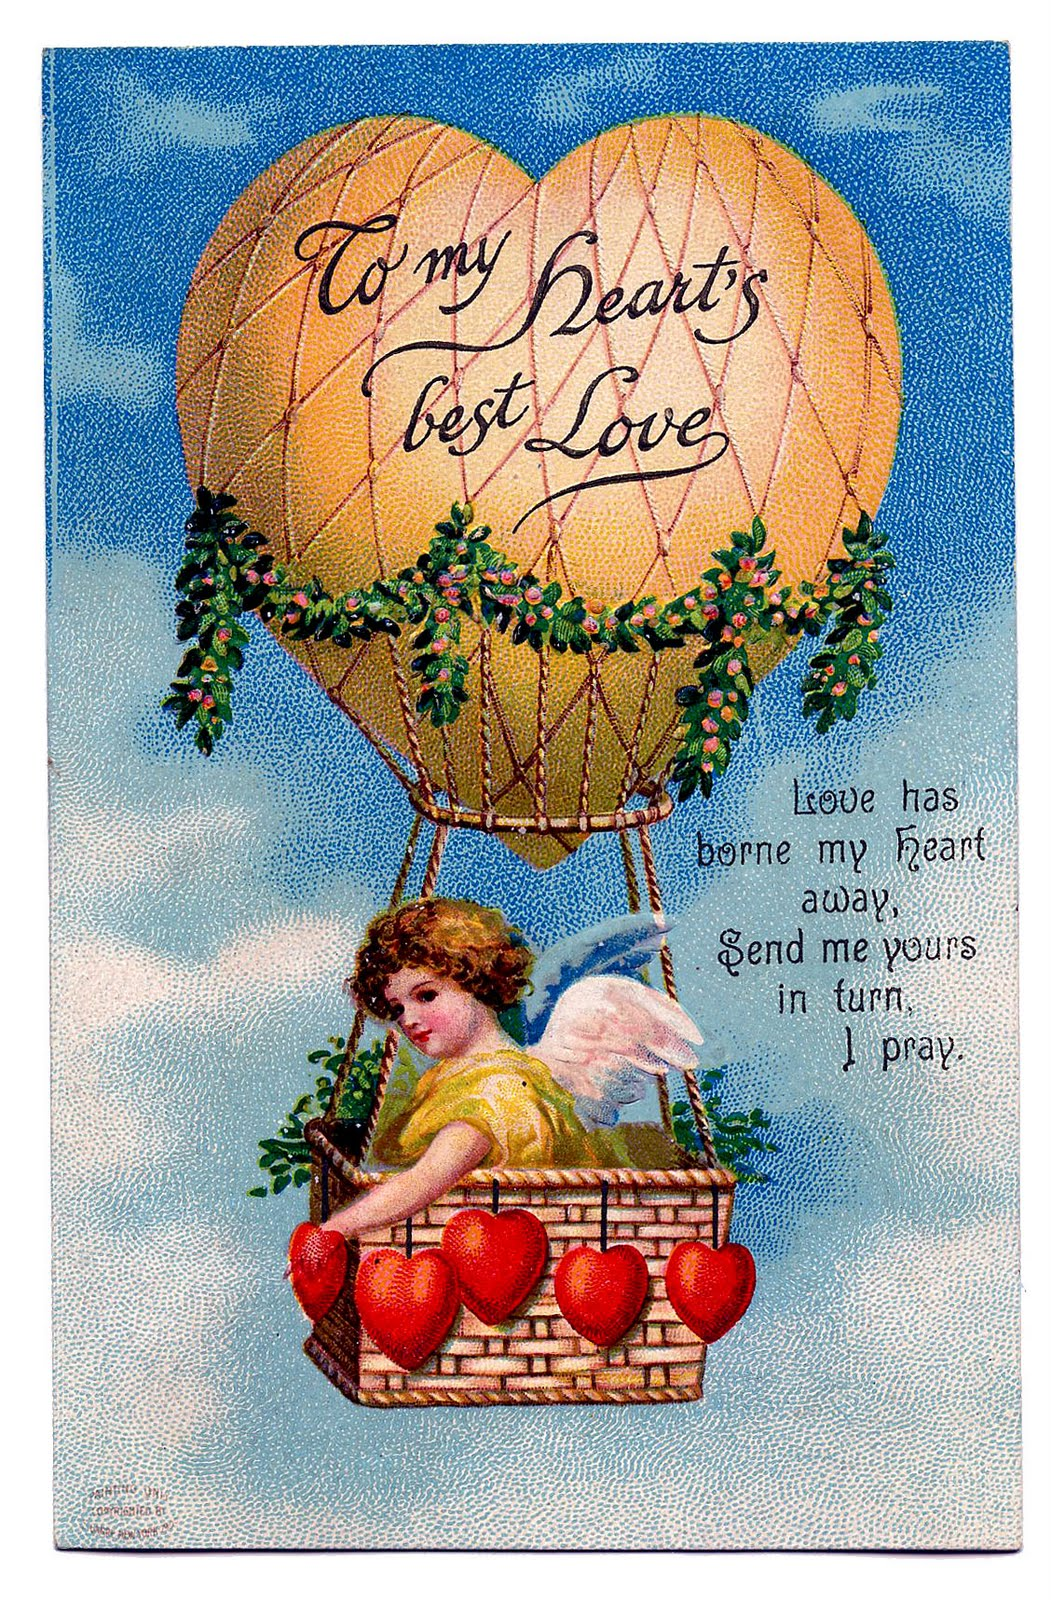 Vintage Valentines Day Clip Art Cupid in Heart Shaped Balloon – Vintage Victorian Valentine Cards